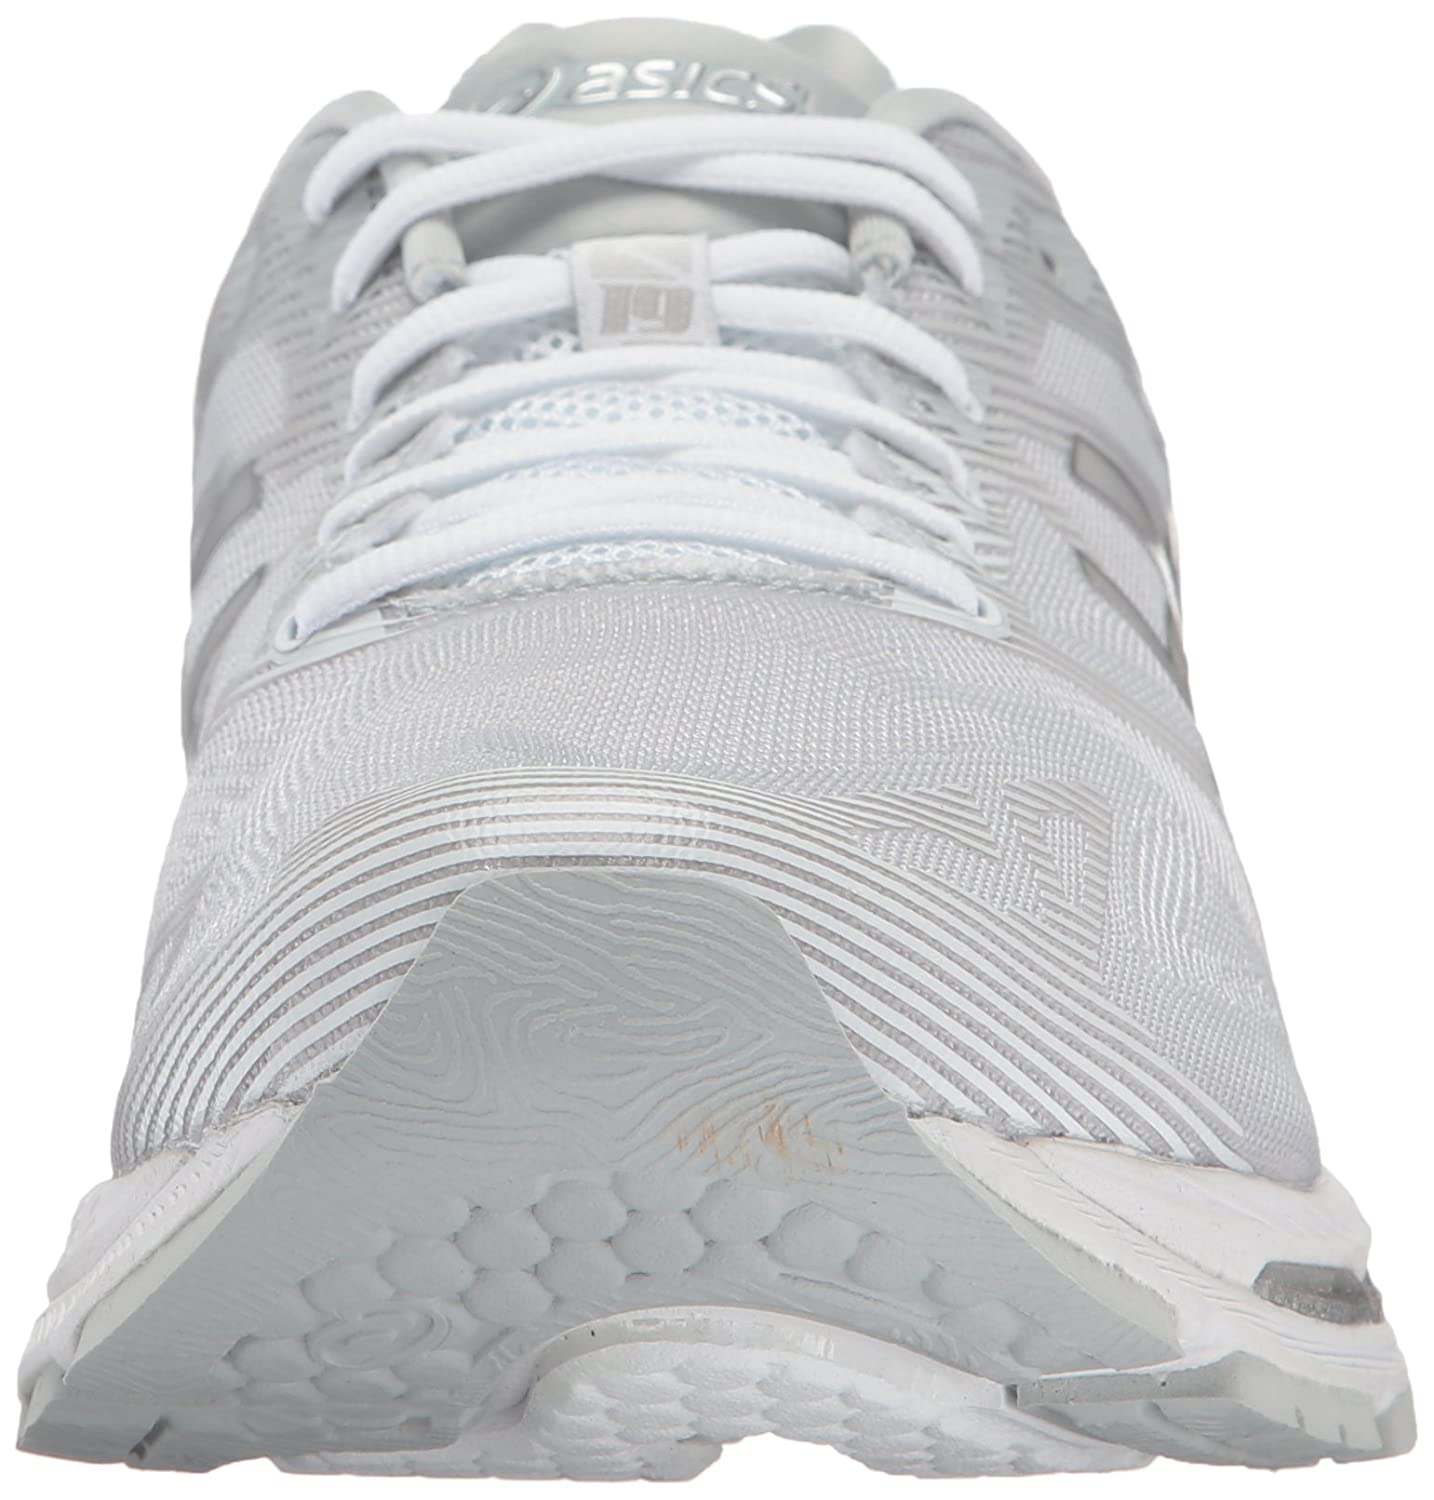 Asics Gel Nimbus 19 Amazon B9YXm0Hkvo